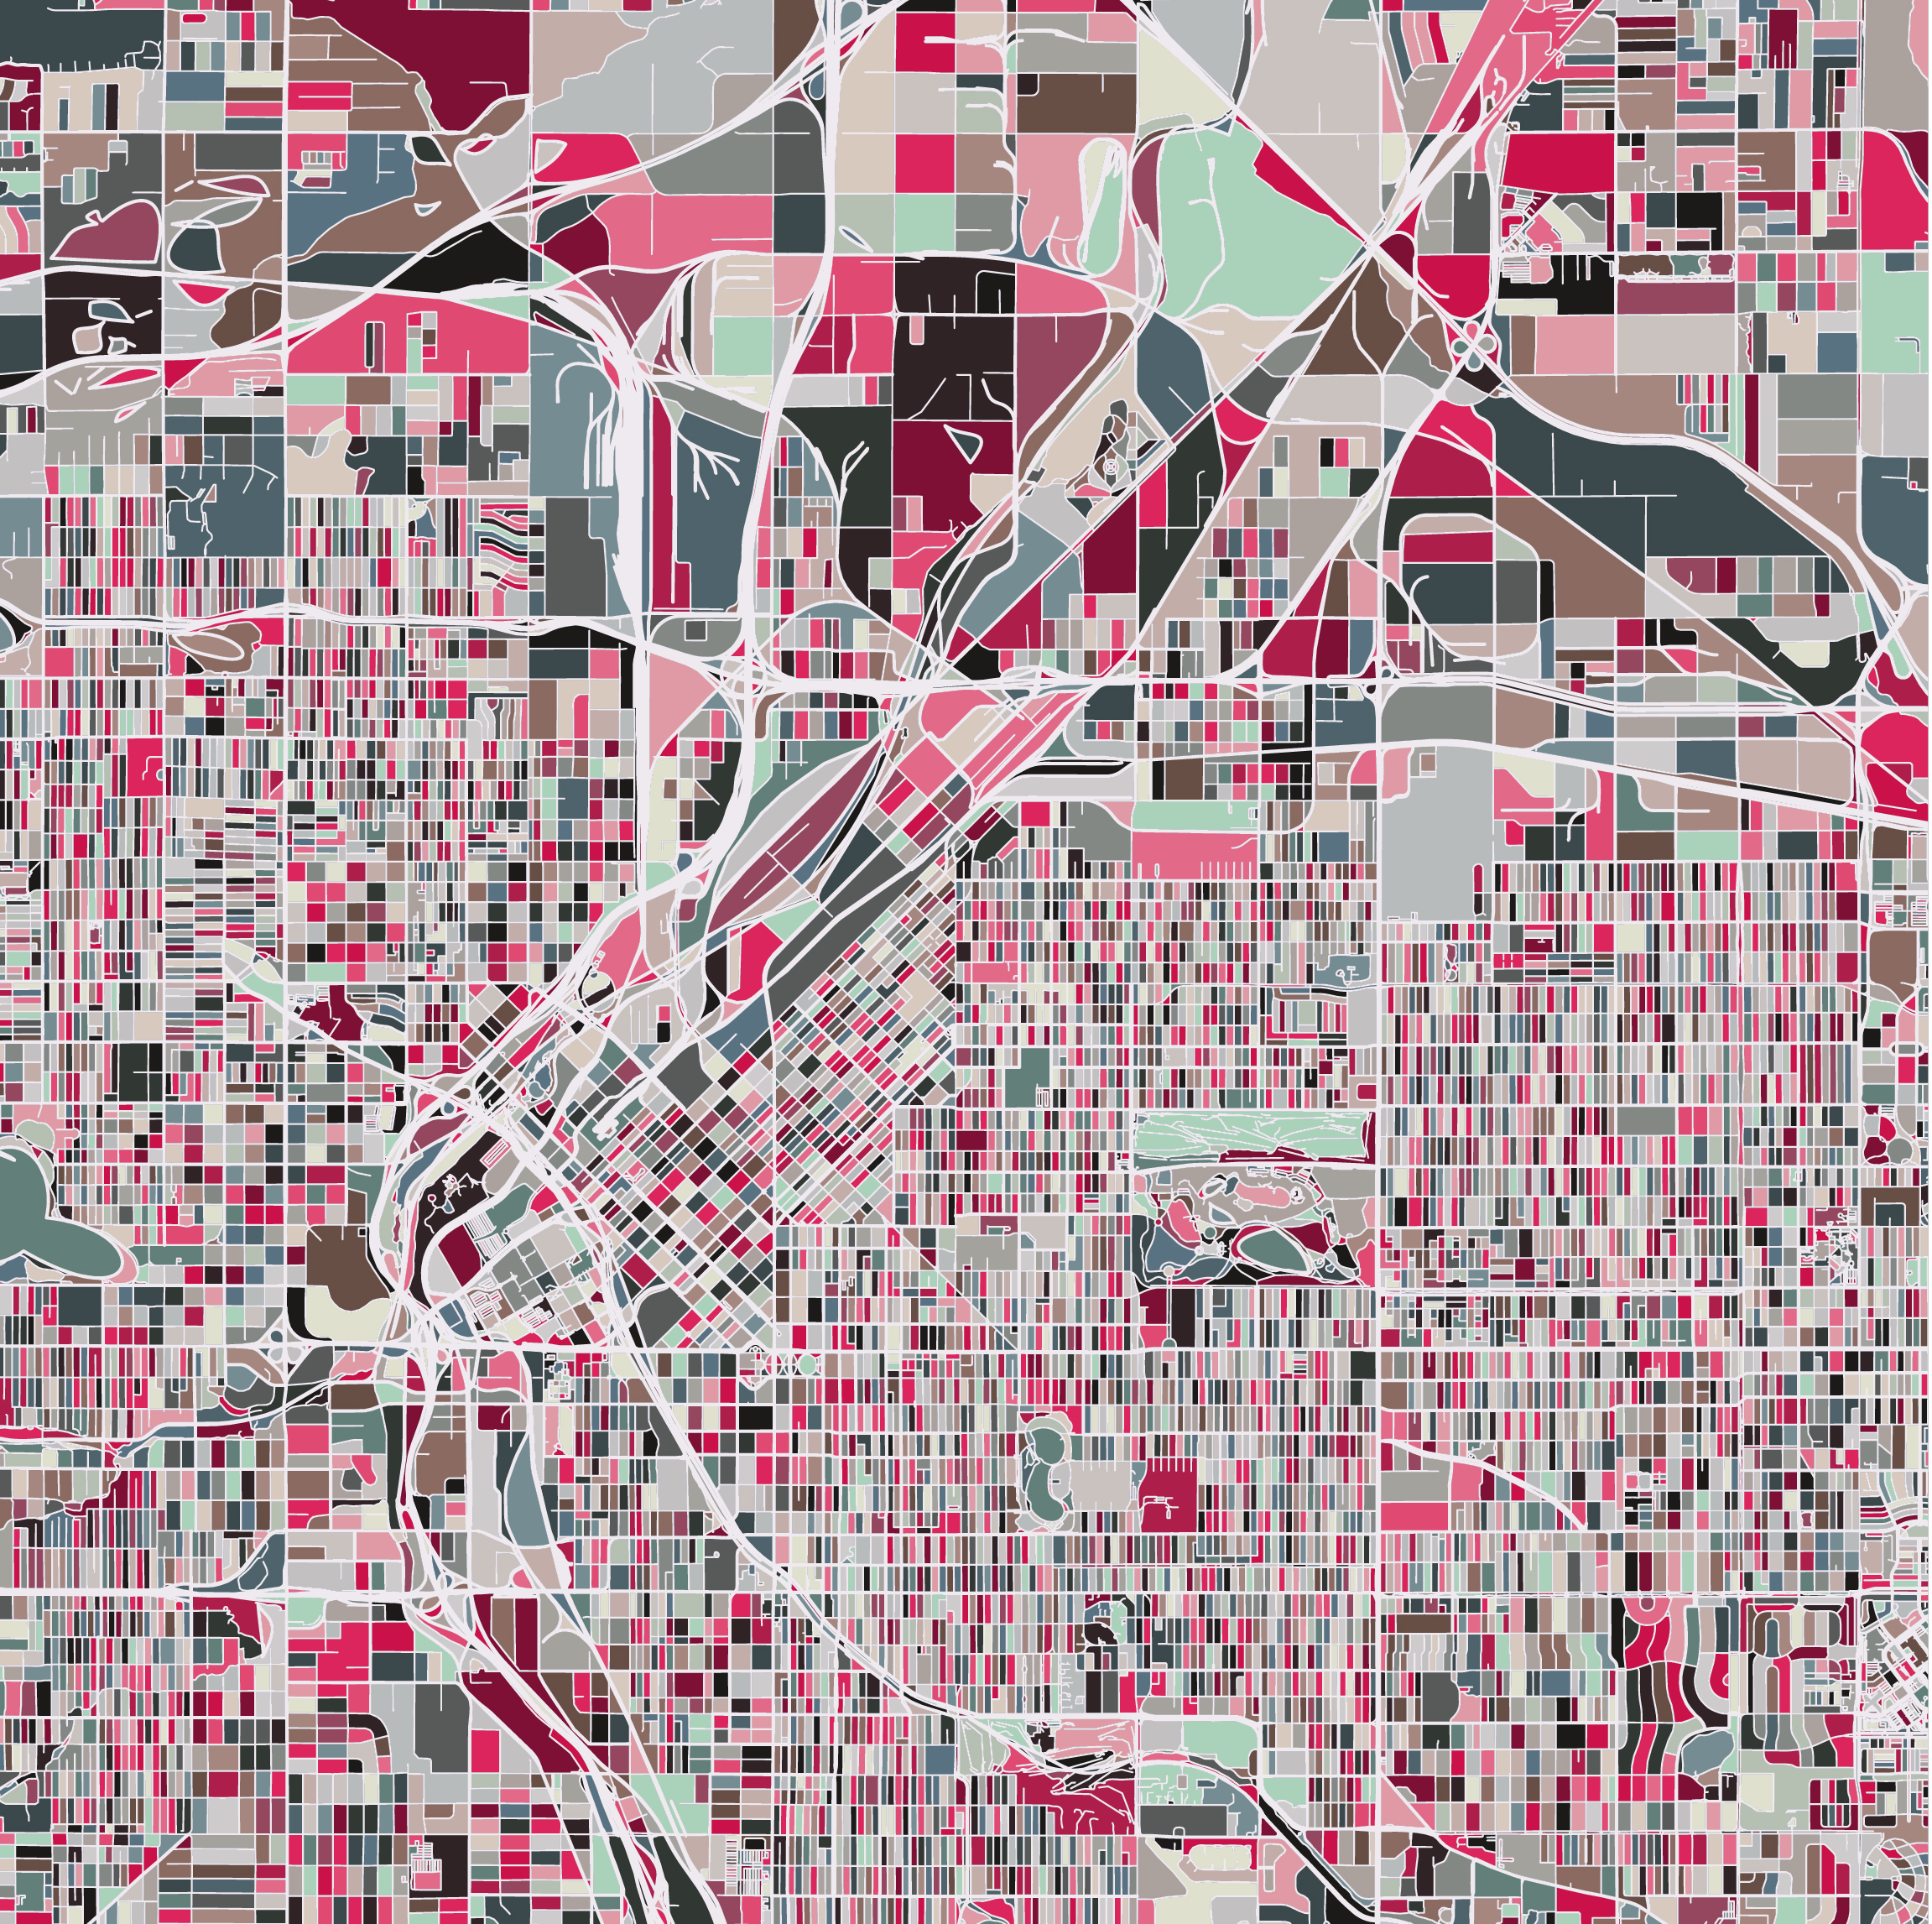 Abstract colorful grid map.